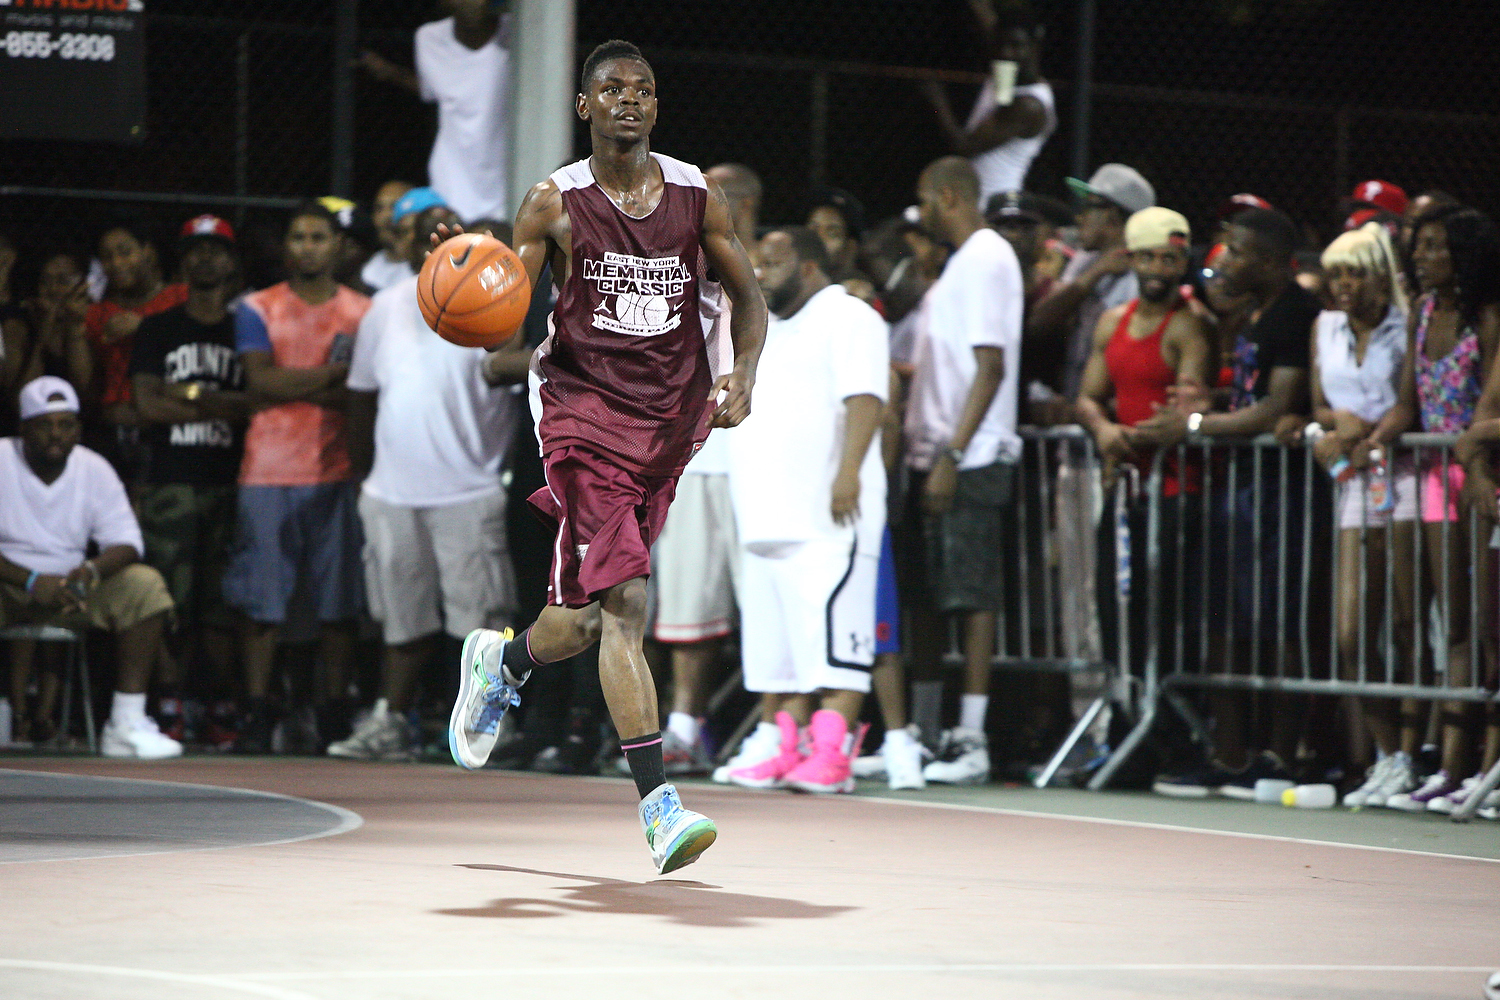 """Eian """"Eddy Kane"""" Davis has no fear, regardless of who he is matched up with, when he laces up his kicks and takes the court. He dropped 26 points in a game where he was matched up against Kemba Walker."""